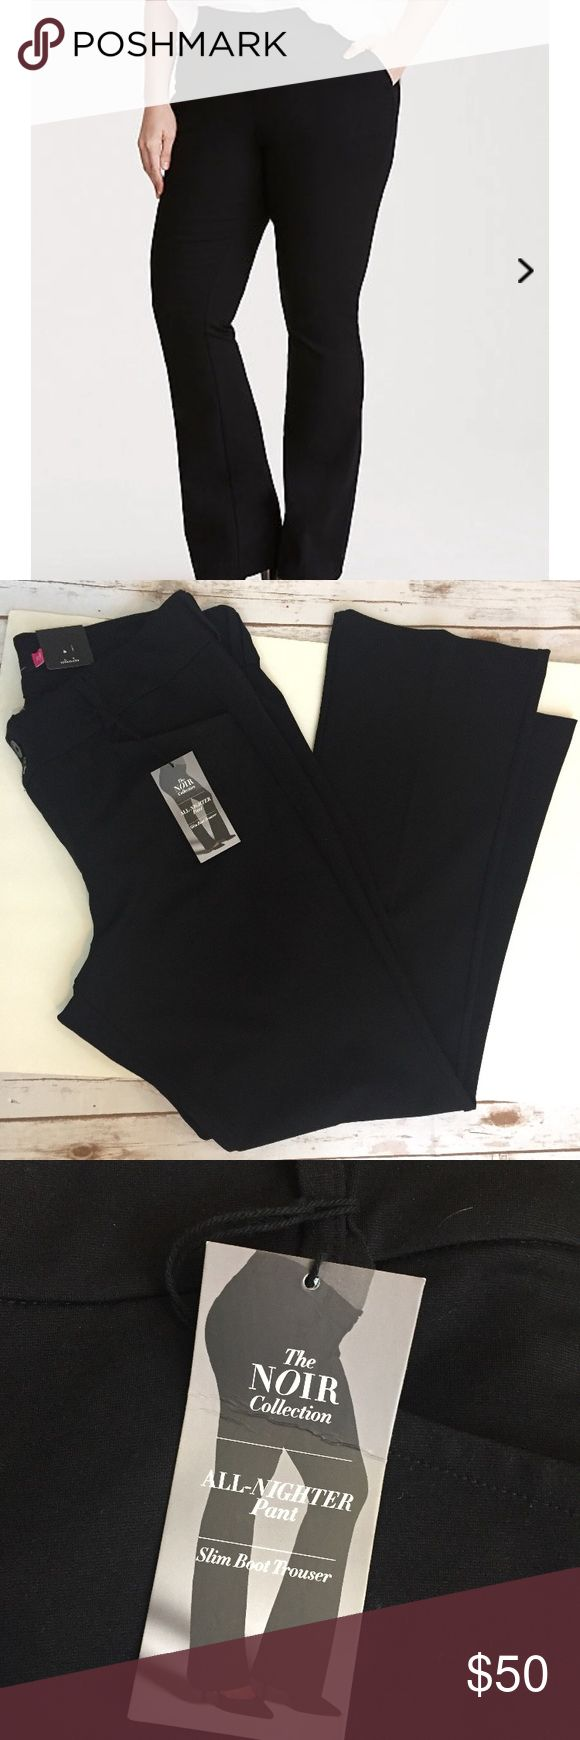 """TORRID - Black Slim Boot Trouser - NWT sz. 20 -$58 These TORRID All Nighter Pants are NEW WITH TAGS and have never been worn.  They are perfect for the office or a night.  Slim and fitted from to high, the break just above the knee lends leg-lengthening quality. Made with our wrinkle-free, power-stretch black All-Nighter ponte, you won't want to take these off after work. A double button closure and belt loops lend versaitlity.  Mid-rise. 34"""" inseam; 11"""" leg openingRayon/nylon/spandex. Wash…"""